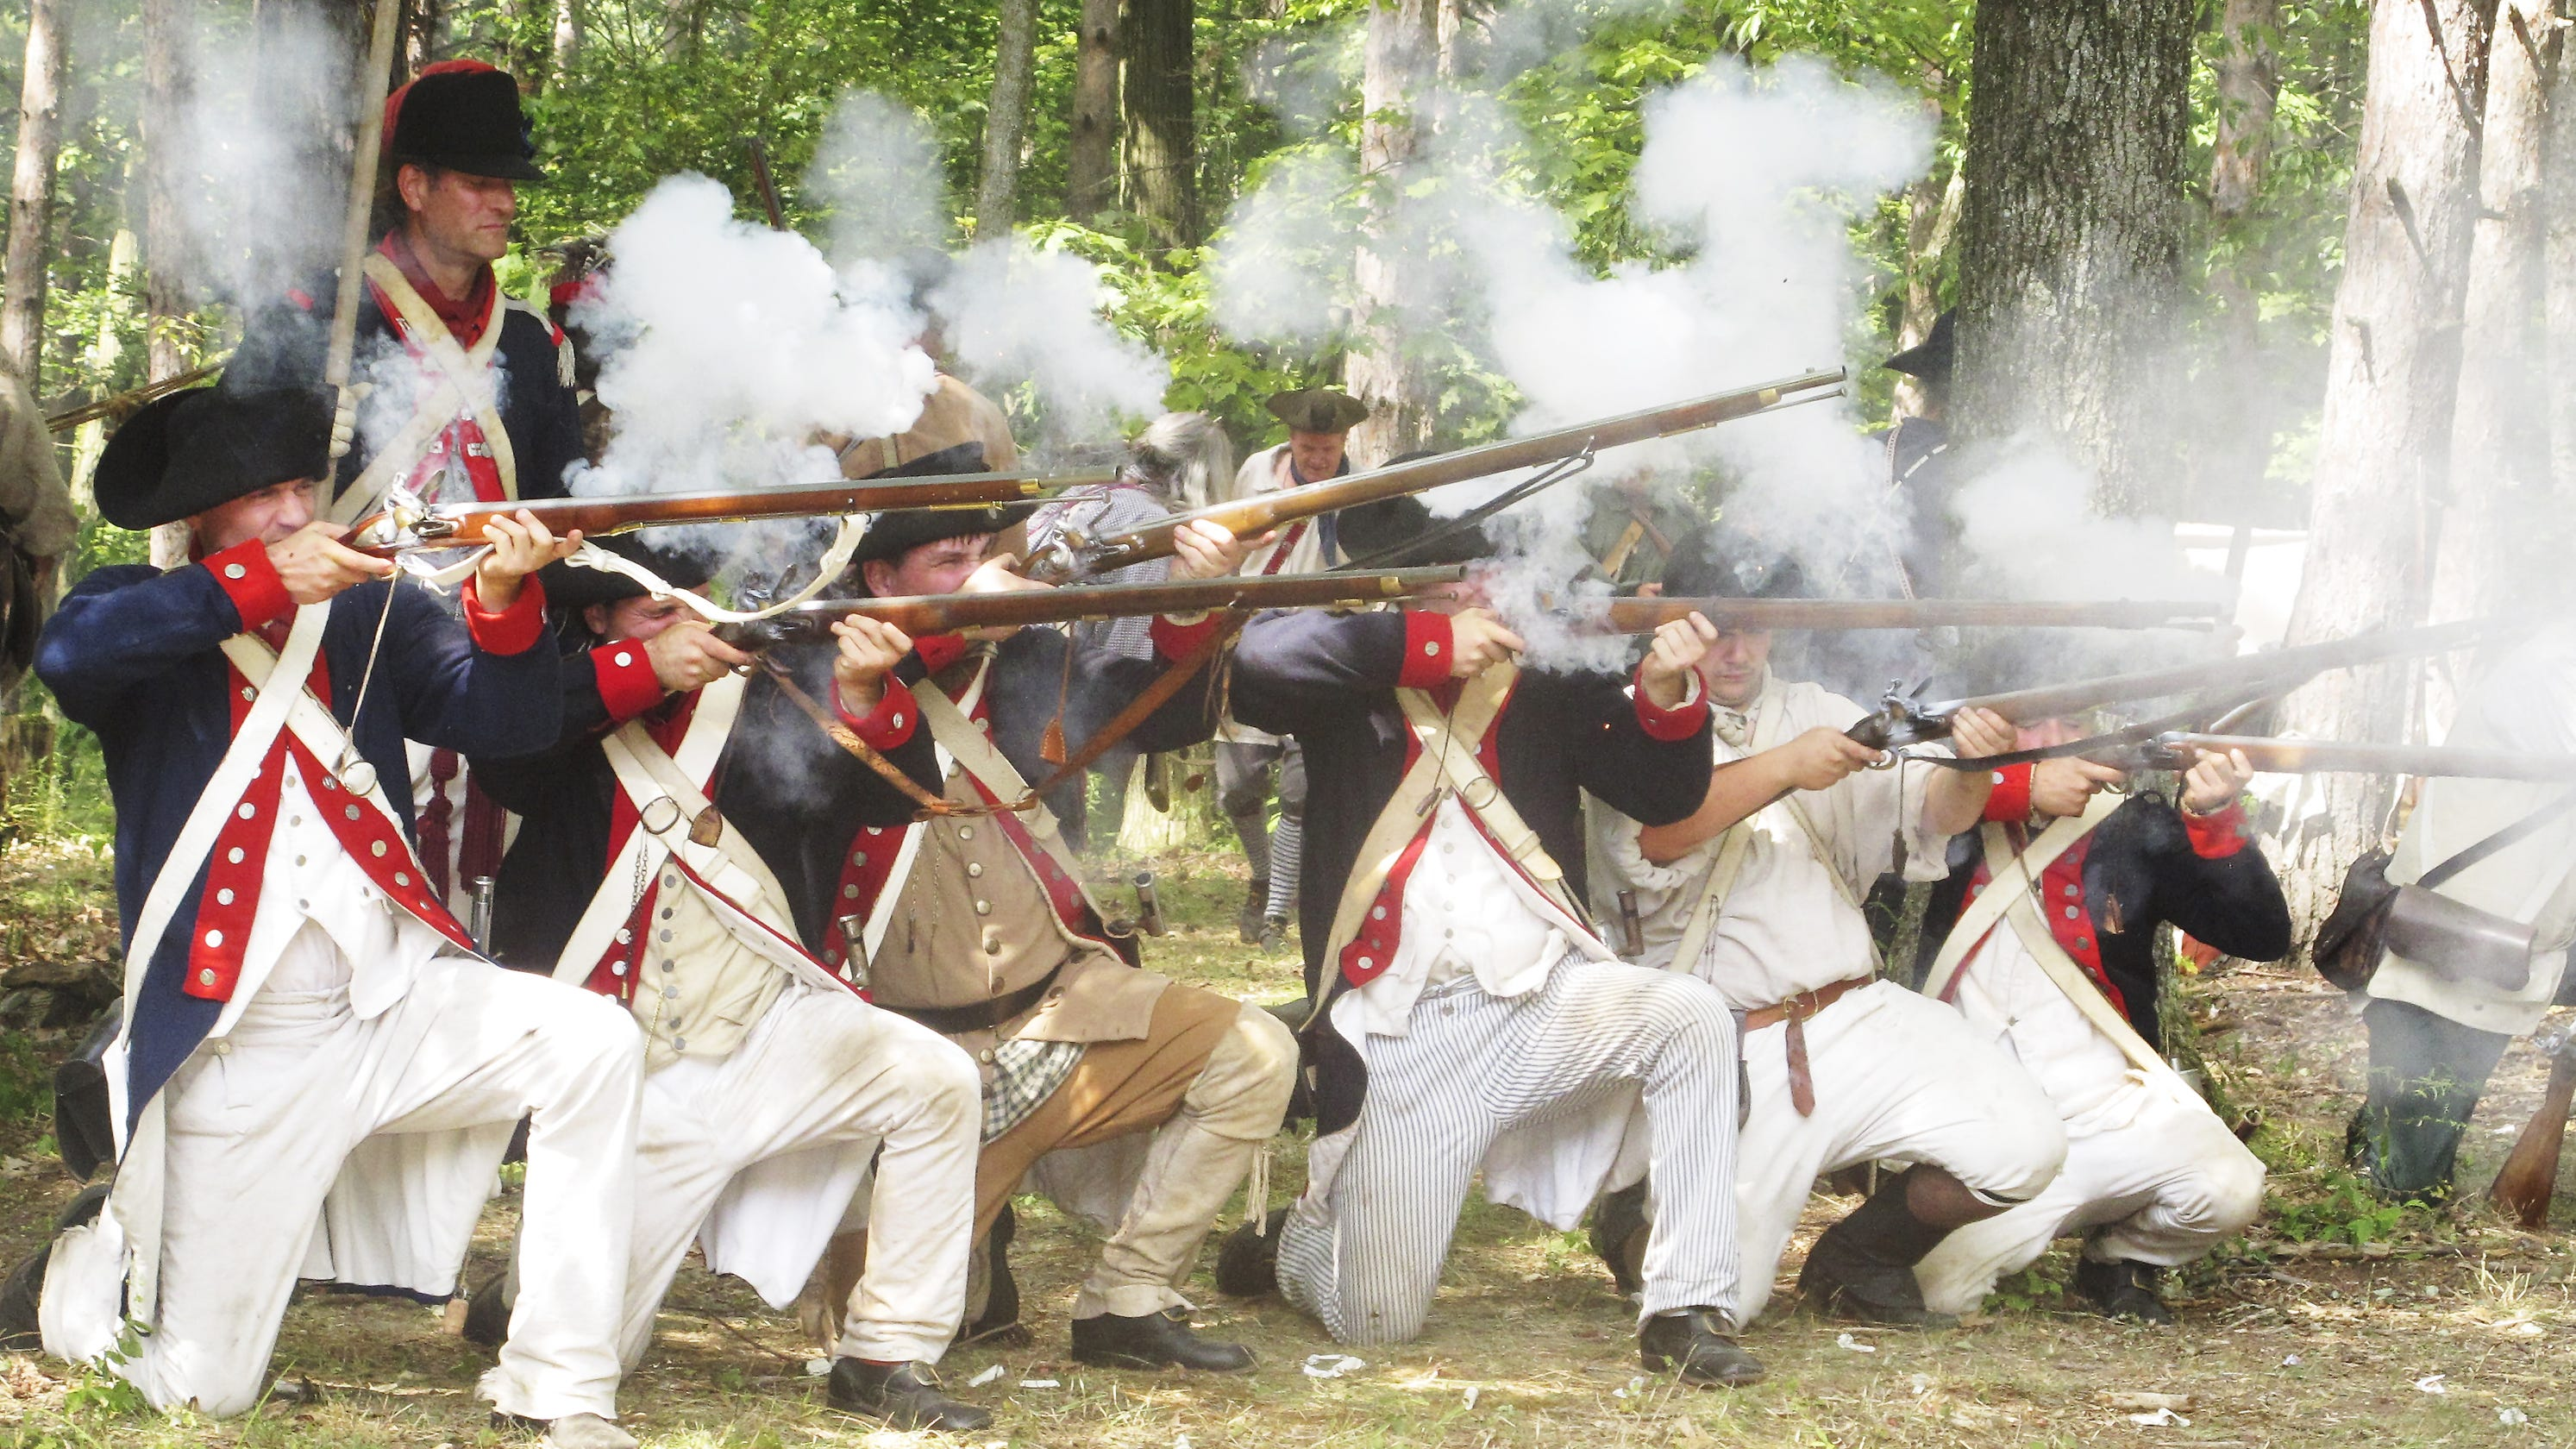 Revolutionary War re-enactment returning to Elmira area this